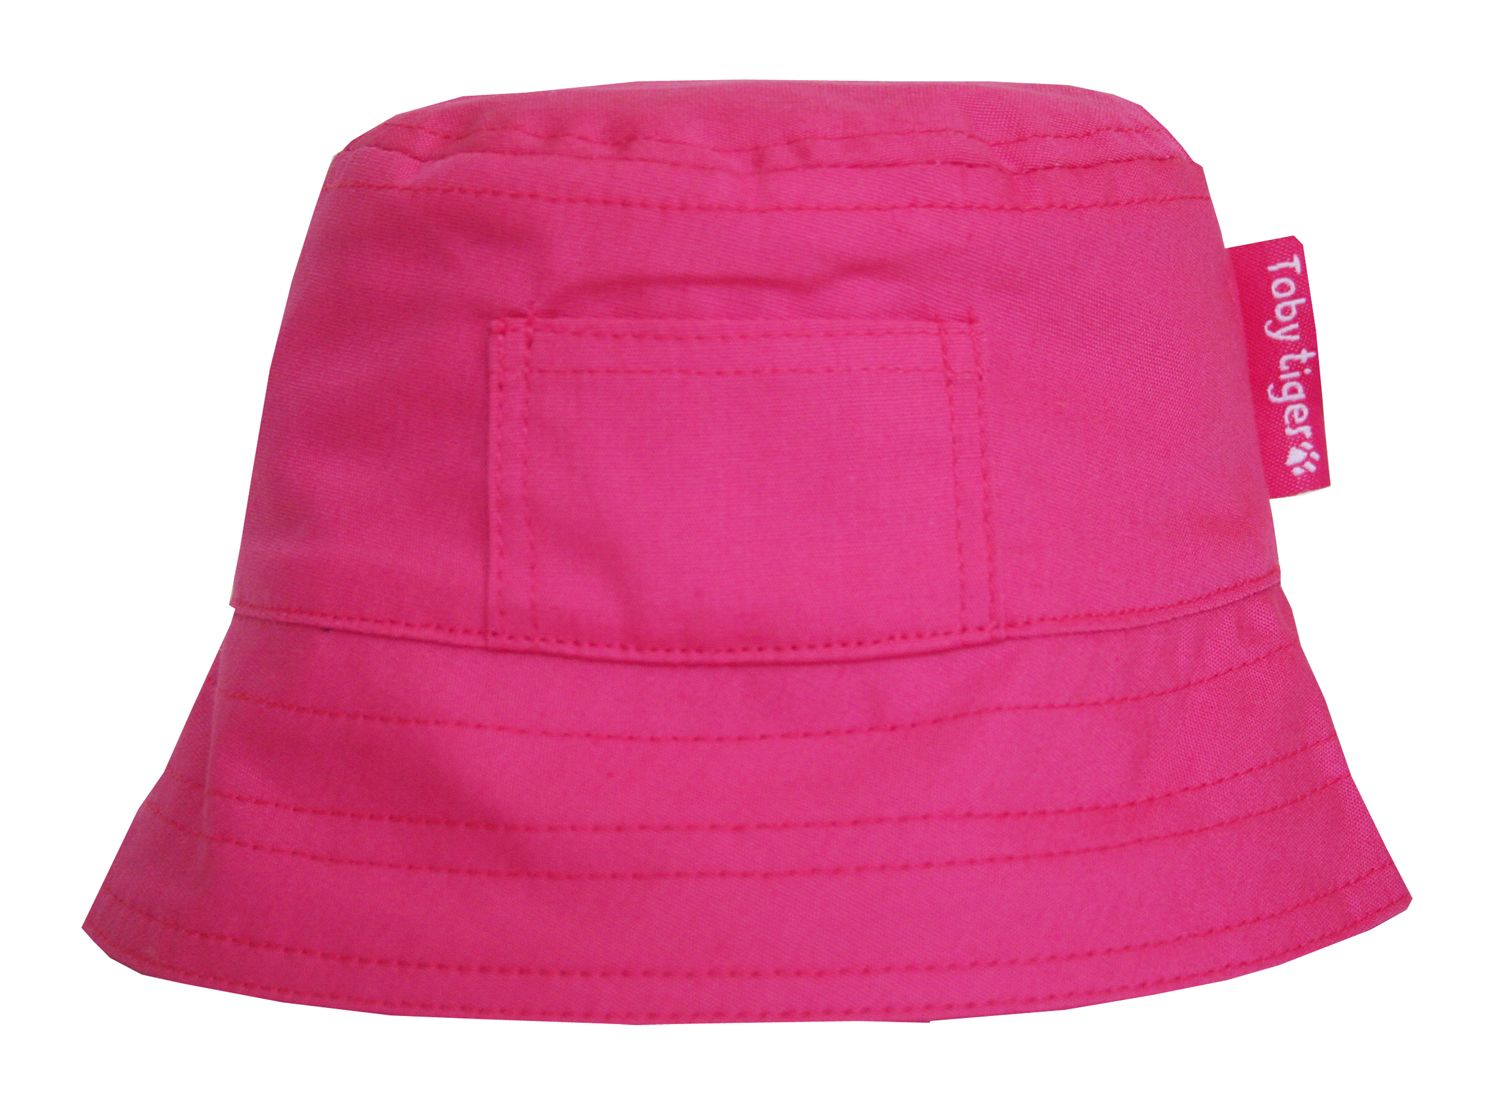 Toby Tiger Toby Tiger Girl`s canvas sunhat in pink, Pink